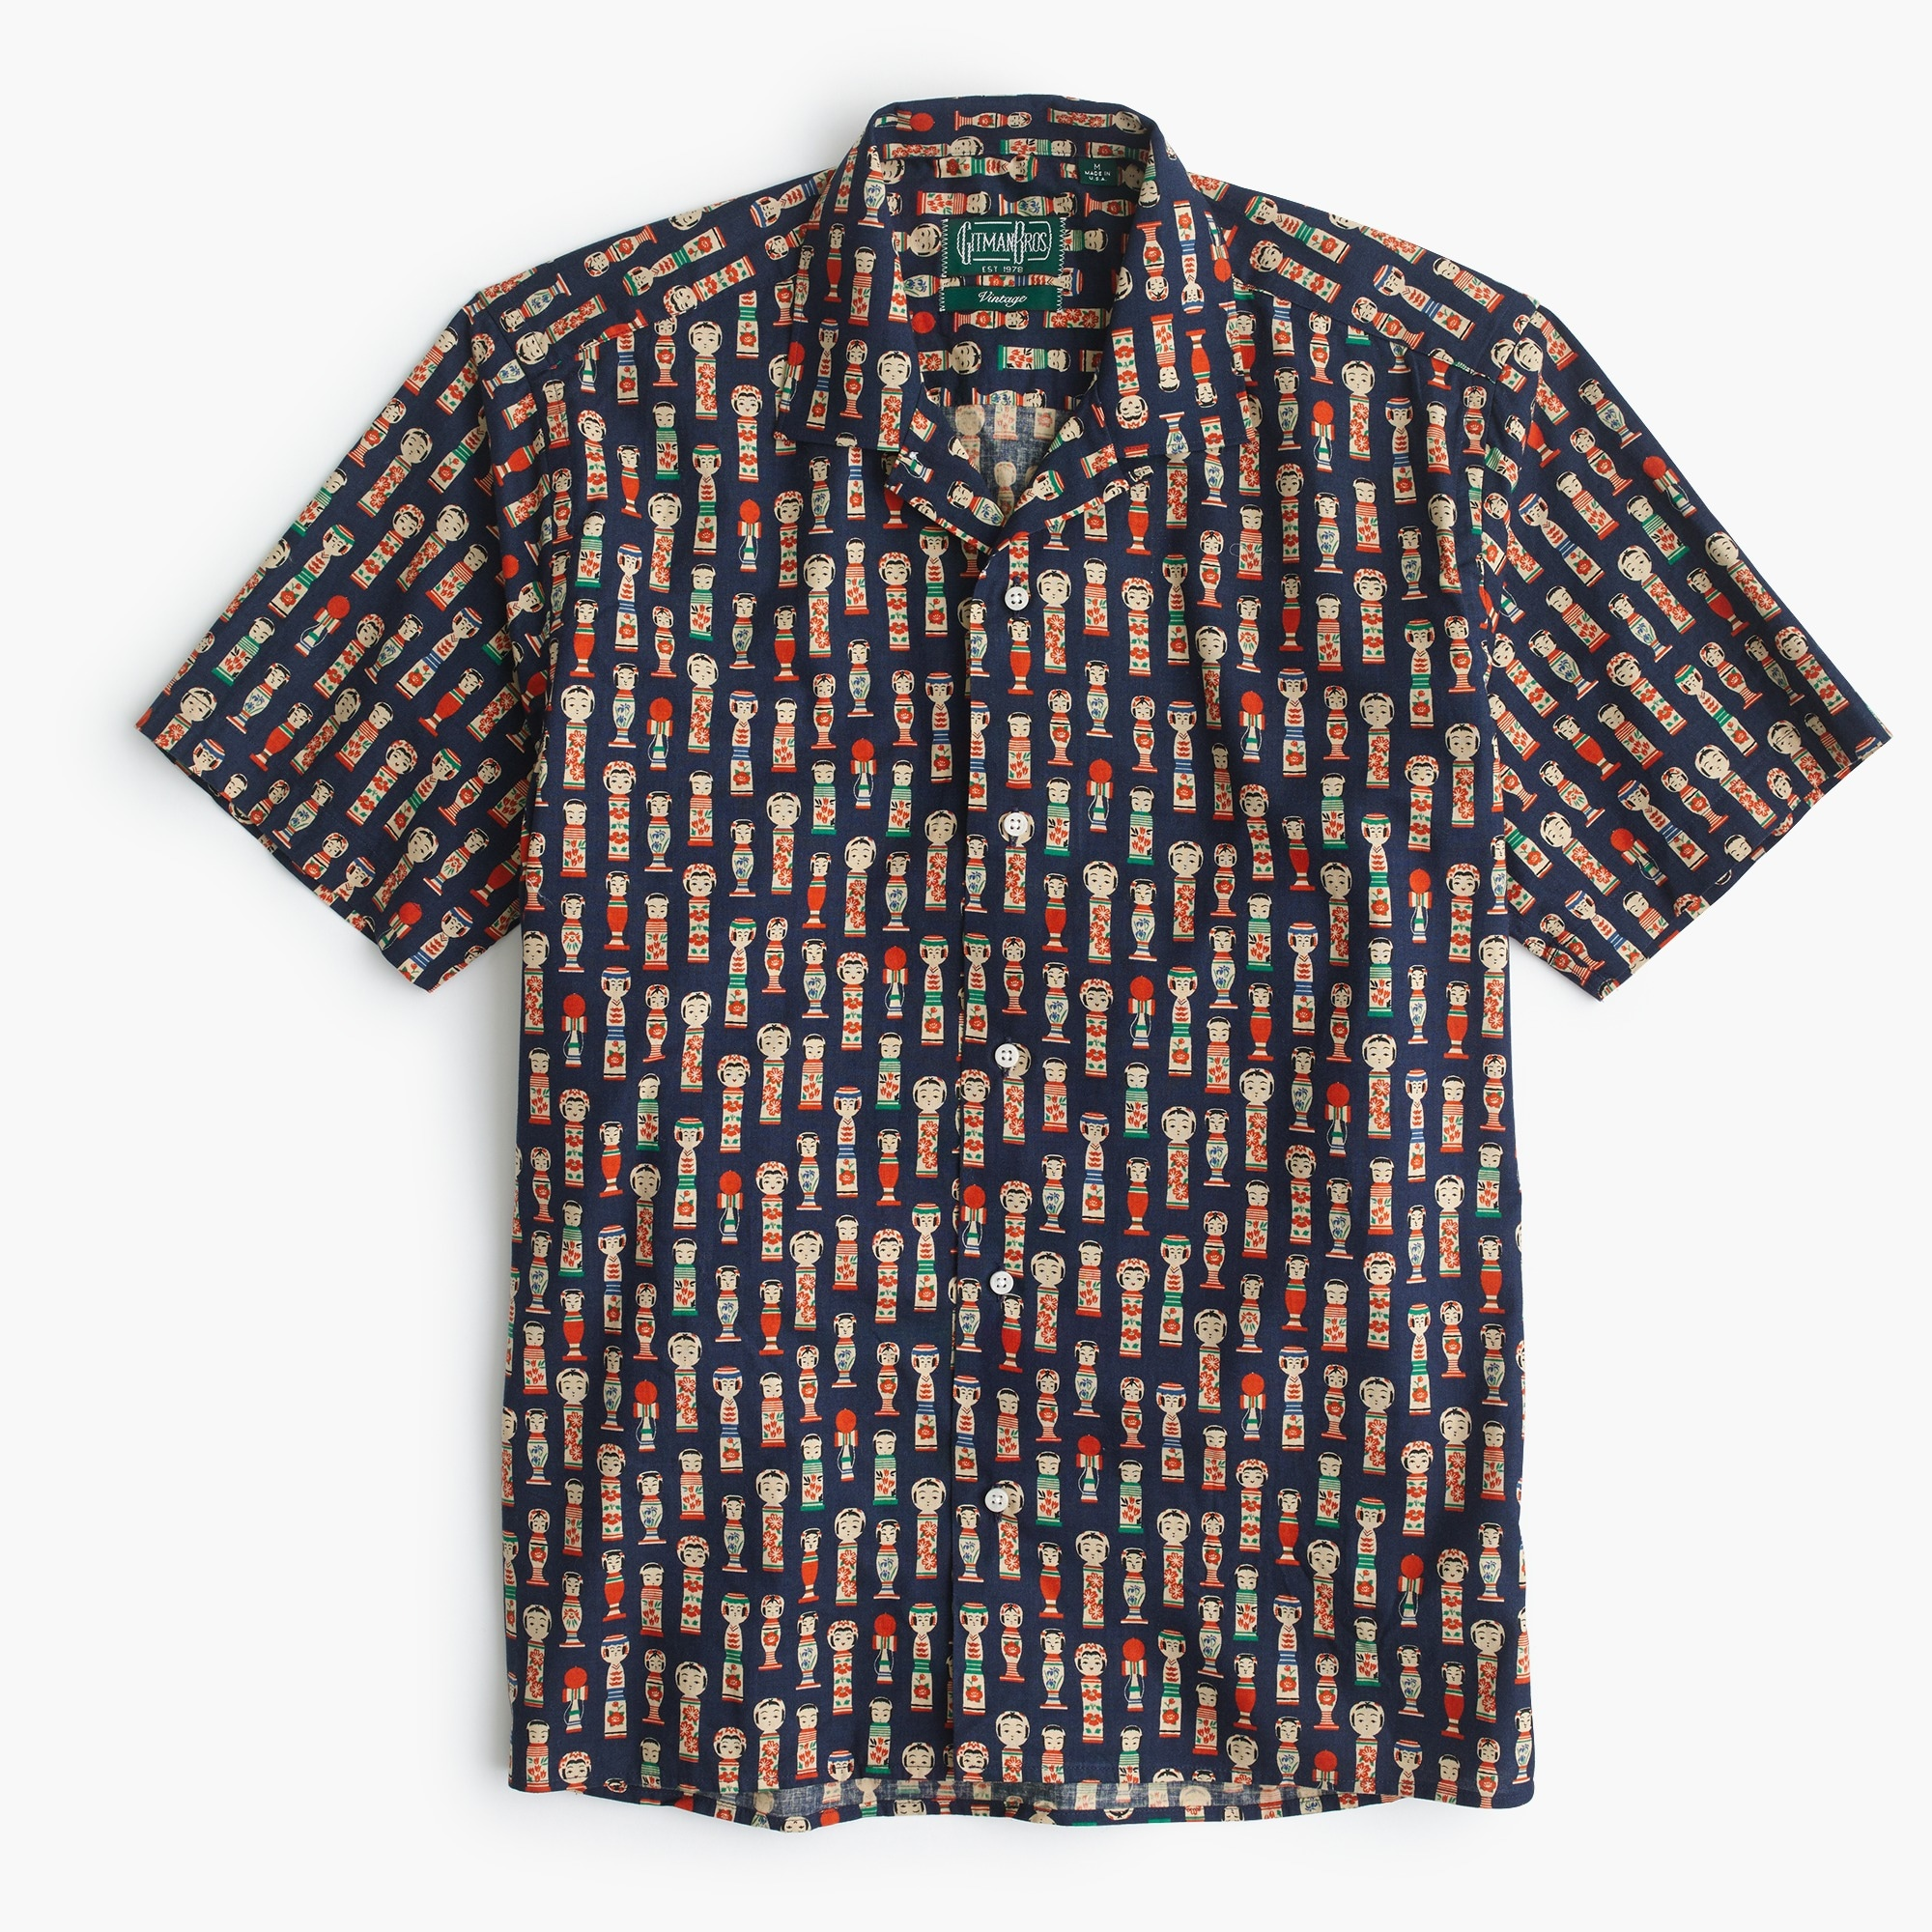 Gitman Vintage™ camp-collar shirt in Kokeshi doll print